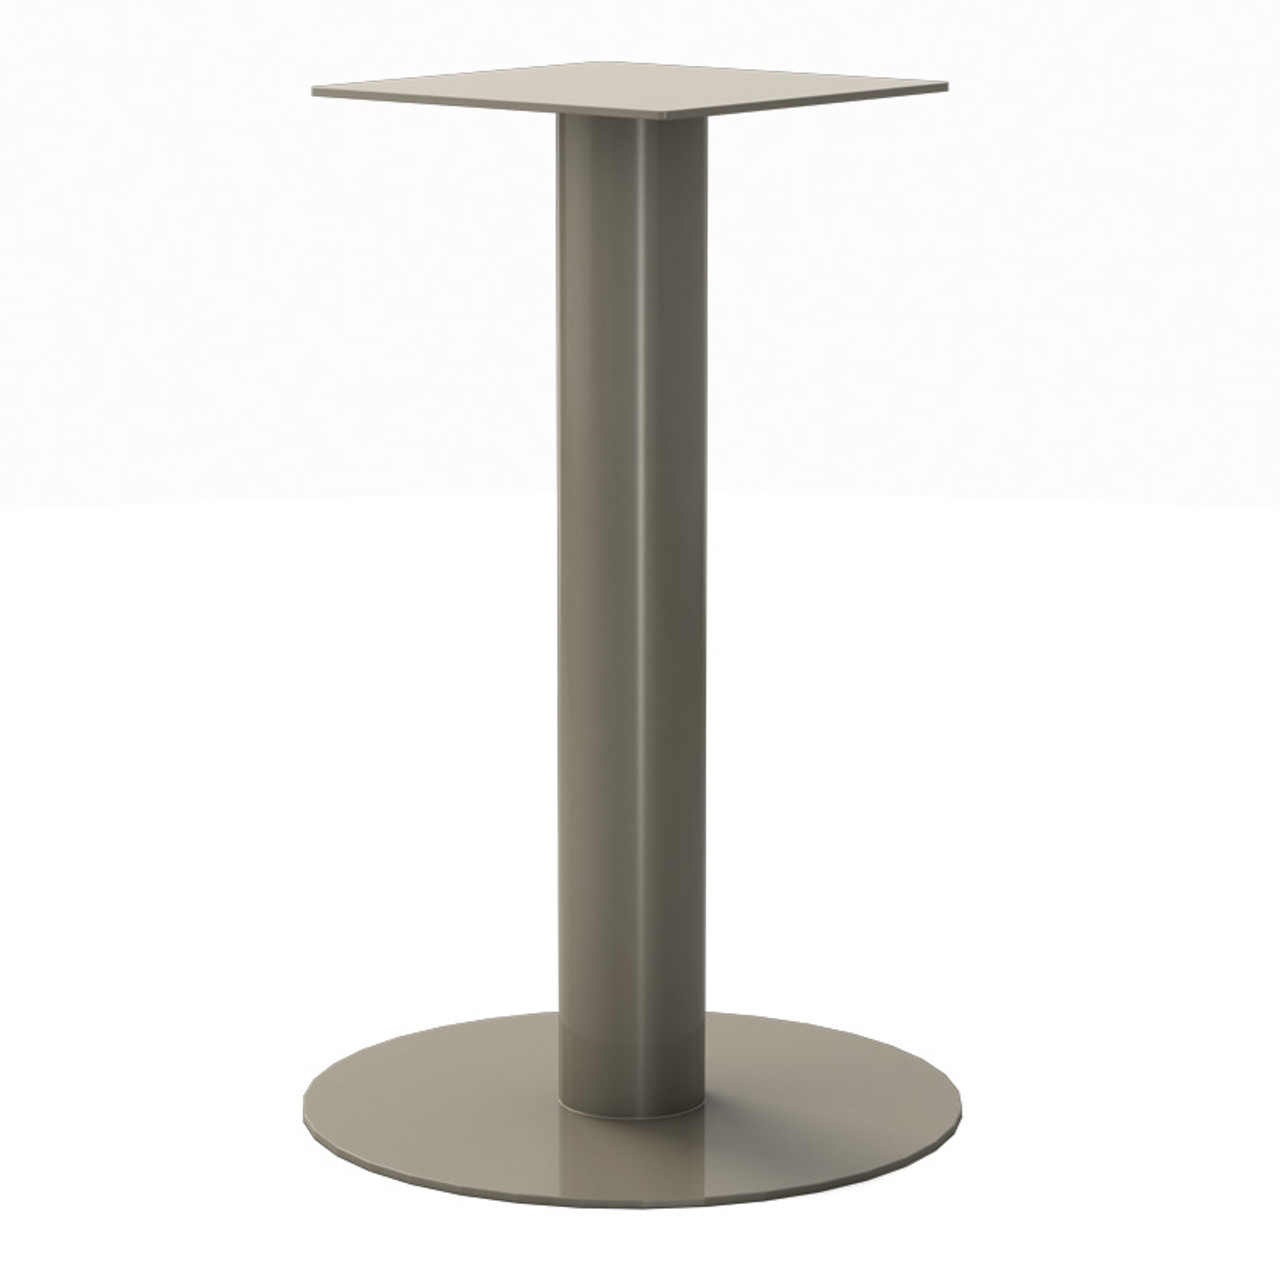 """Round Pedestal Base, 27-3/4"""" Height, 18"""" Base Diameter, 4"""" diameter Column, with welded mounting plate - Replacementtablelegs.com"""